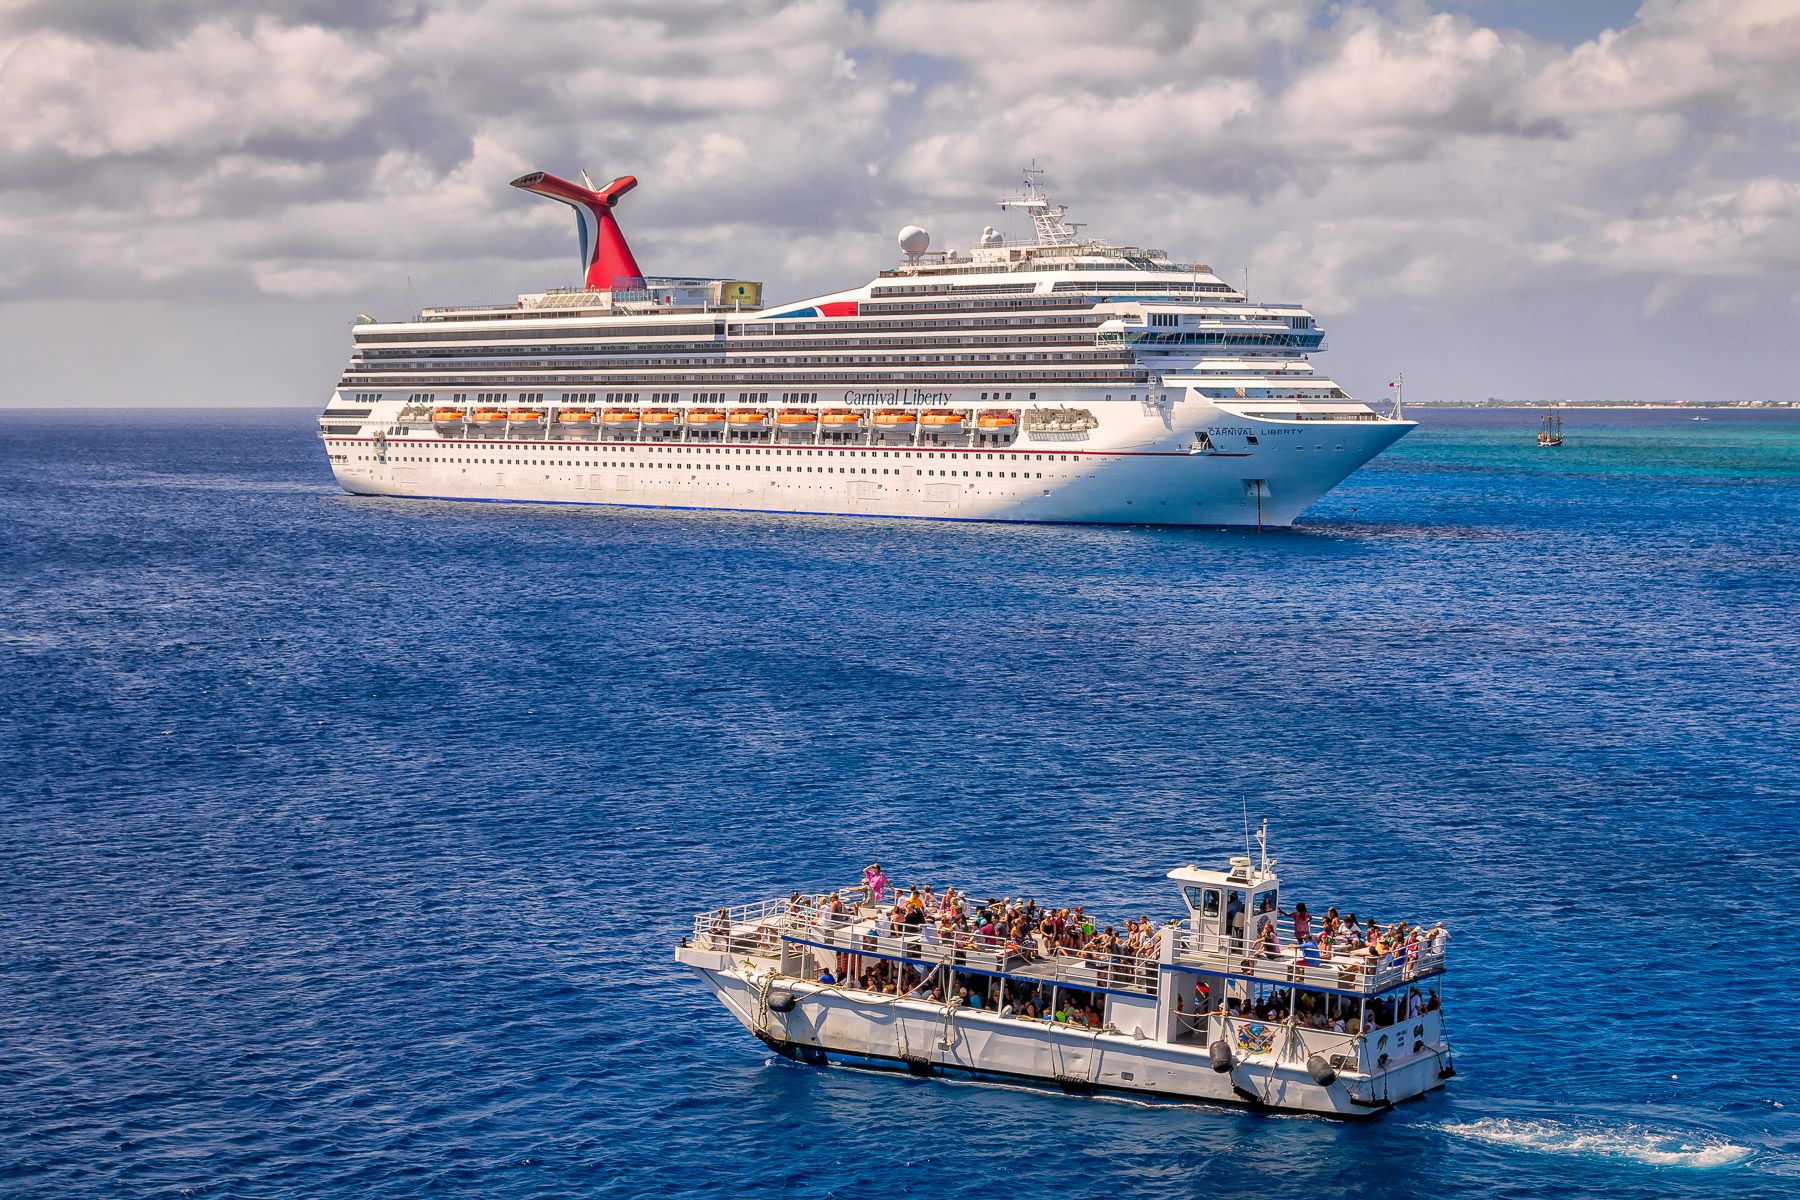 A Cruise Ship Tender Used To Transport Passengers Between A Port And A Ship When The Ship Is Unable To D Grand Cayman Western Caribbean Cruise Caribbean Cruise